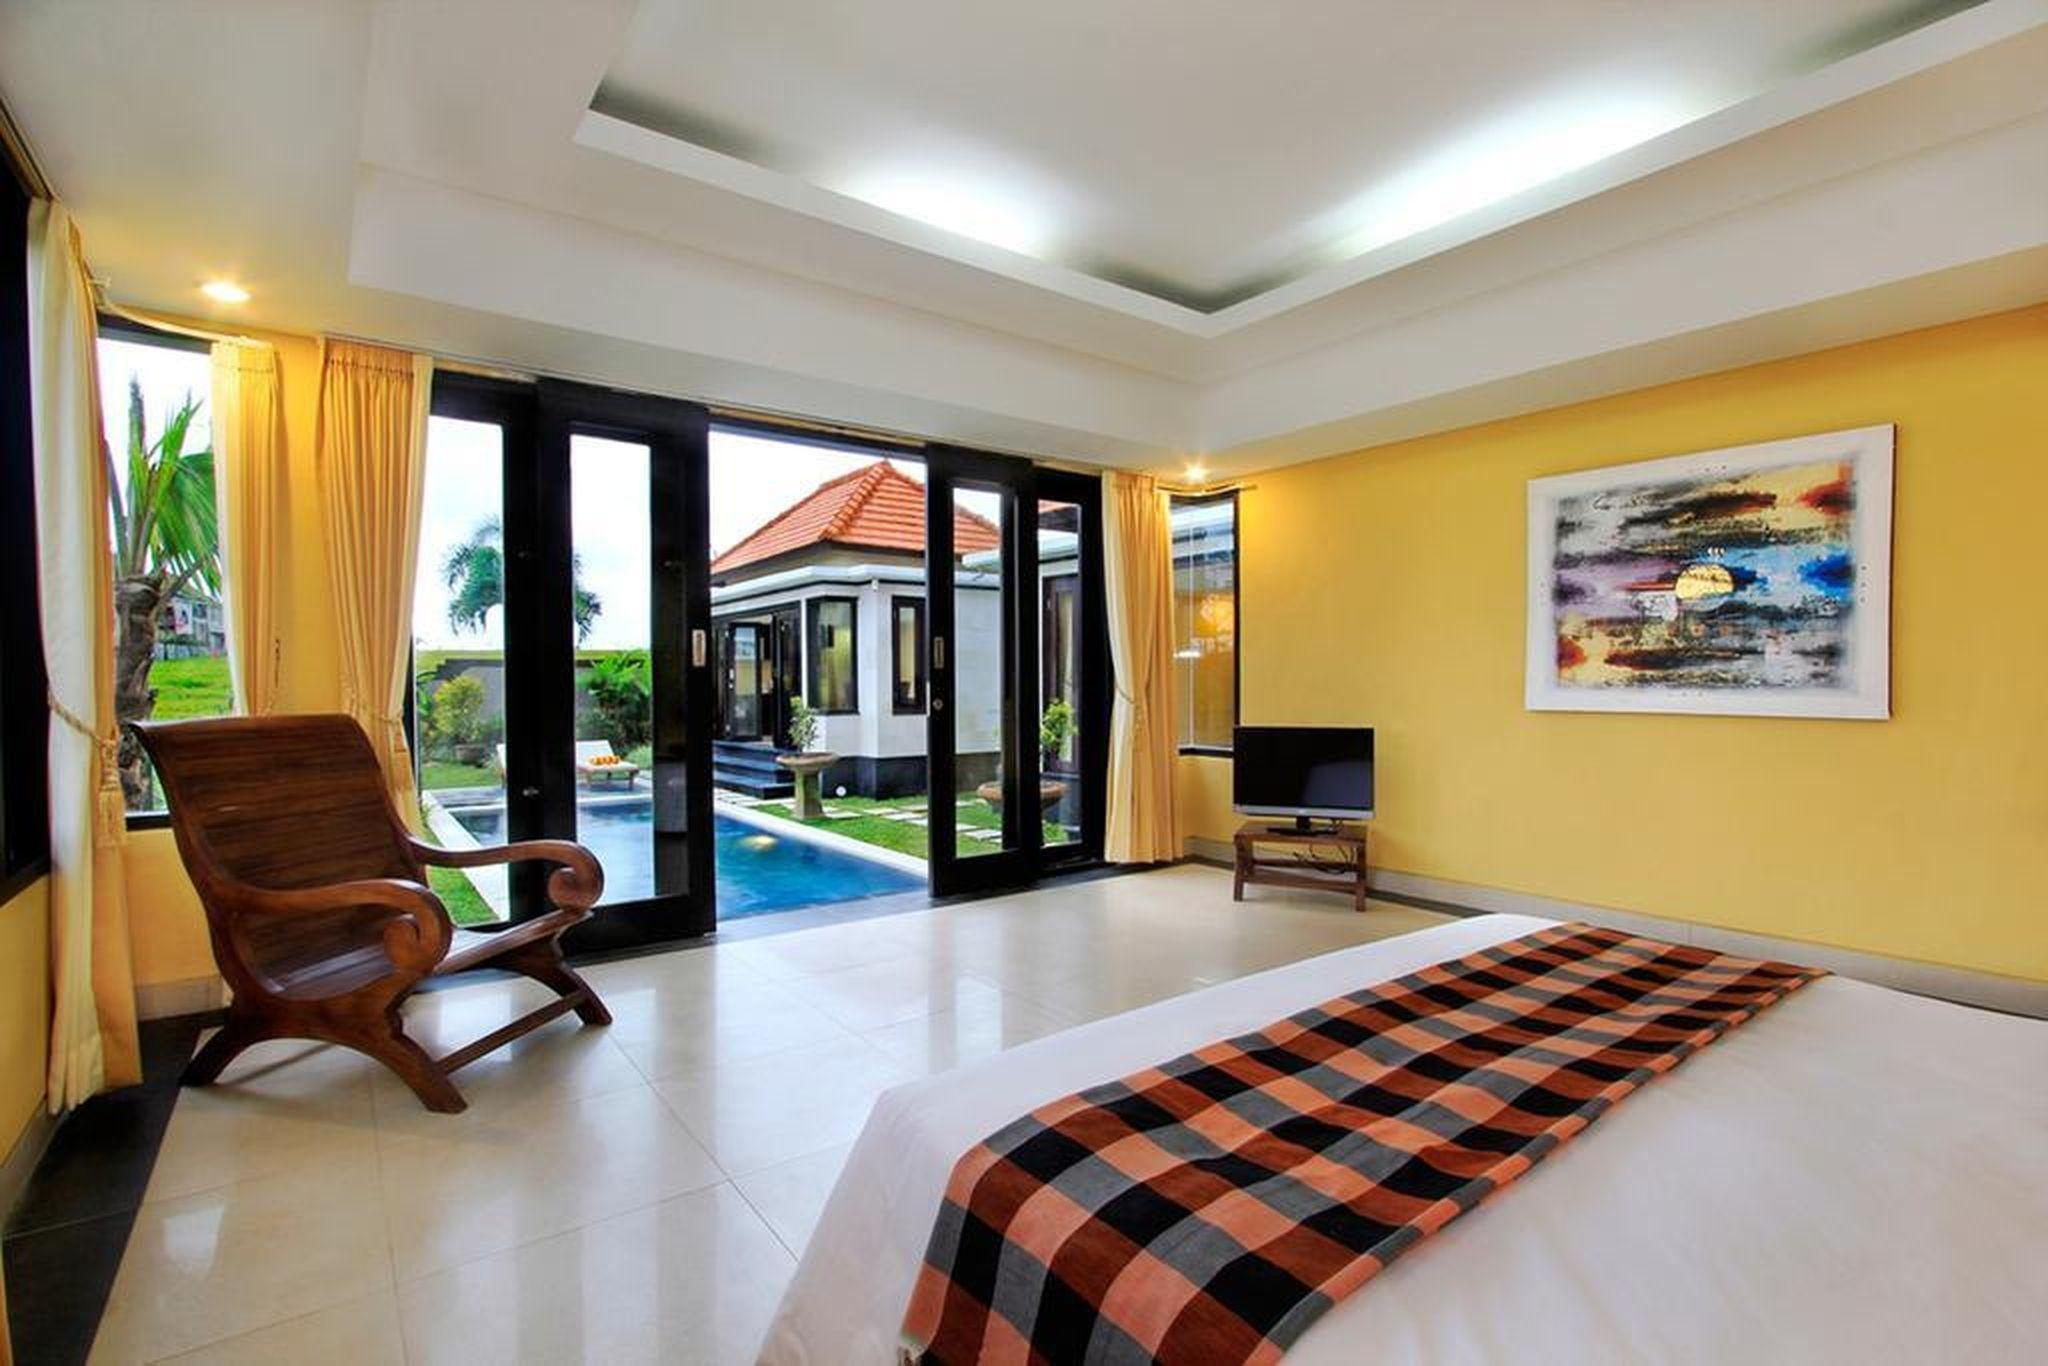 3 BDR Villa With Ricefield View In Canggu